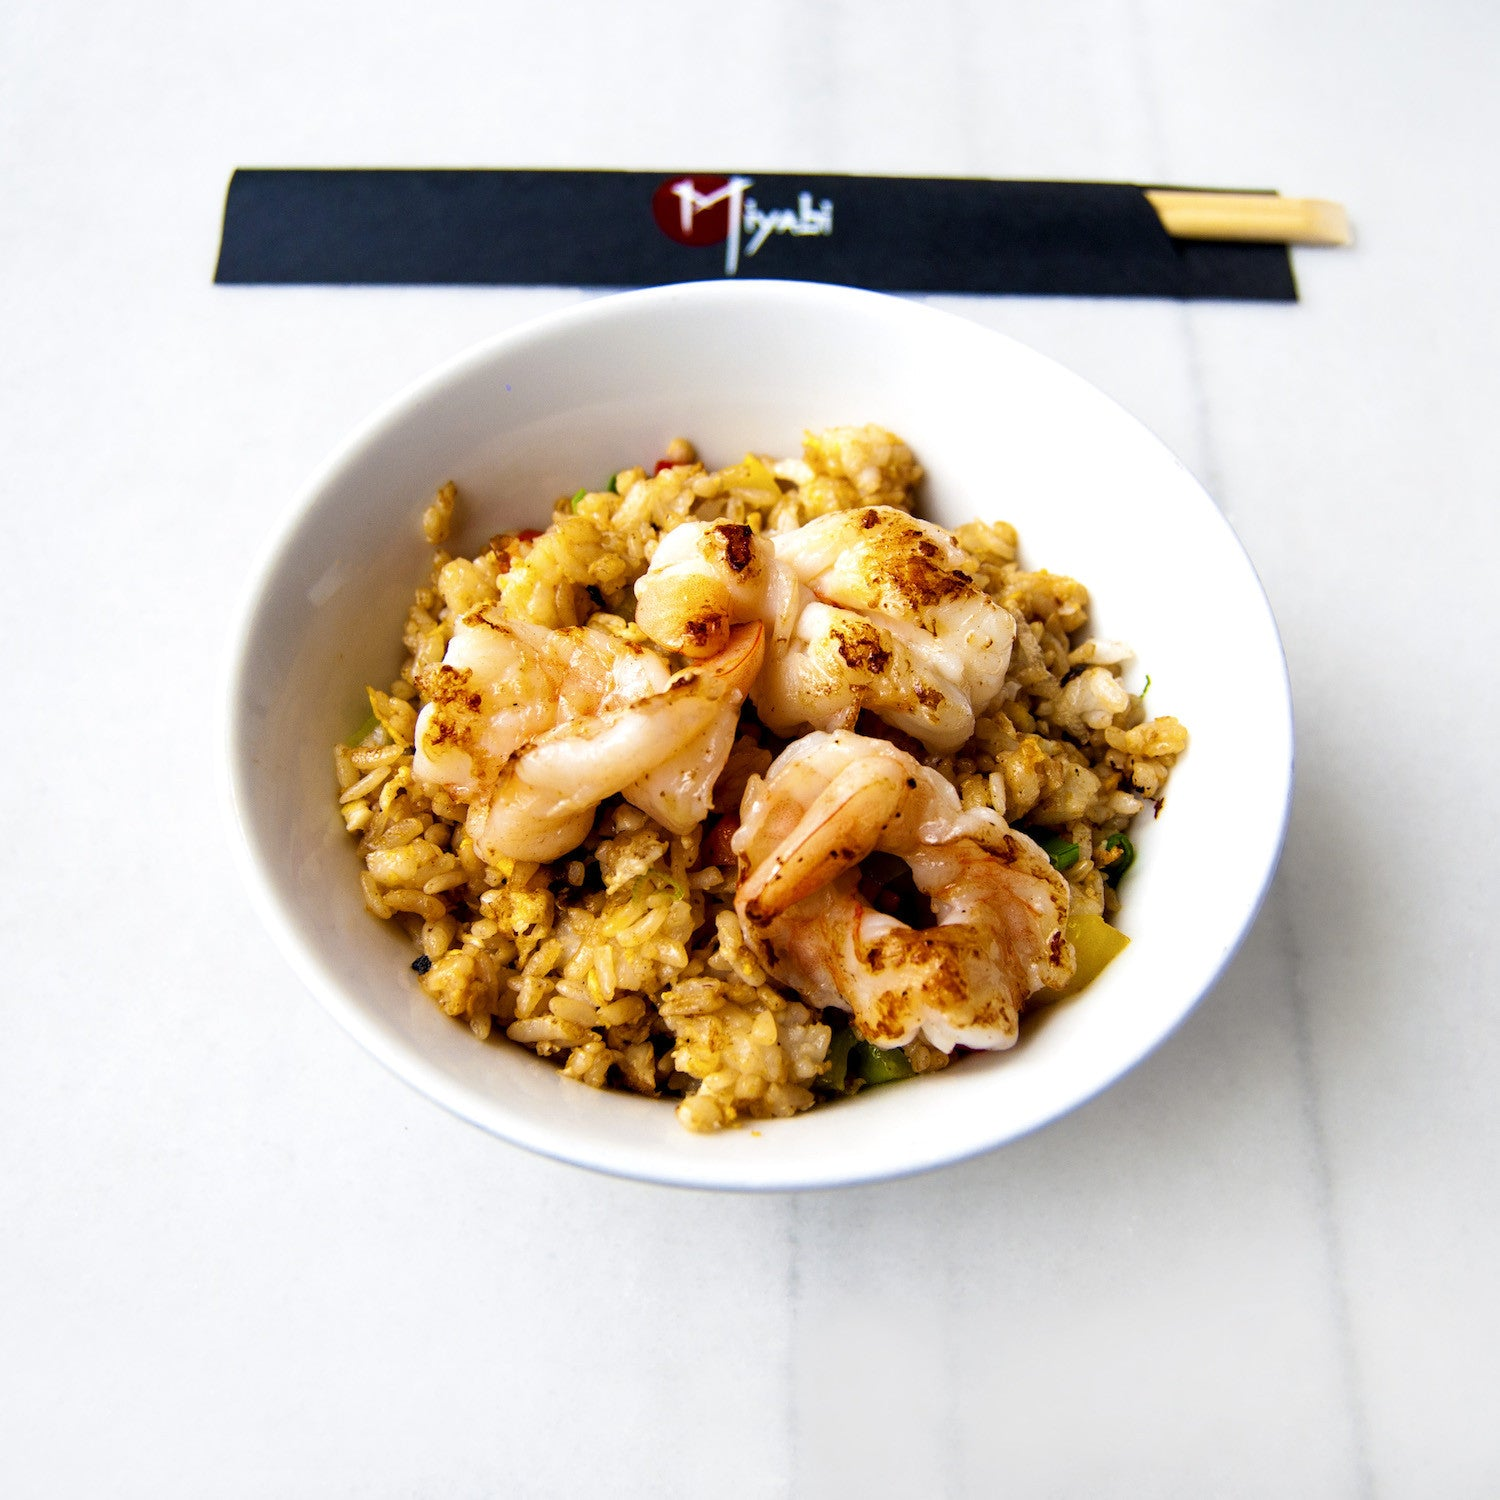 Ebi Fried Rice